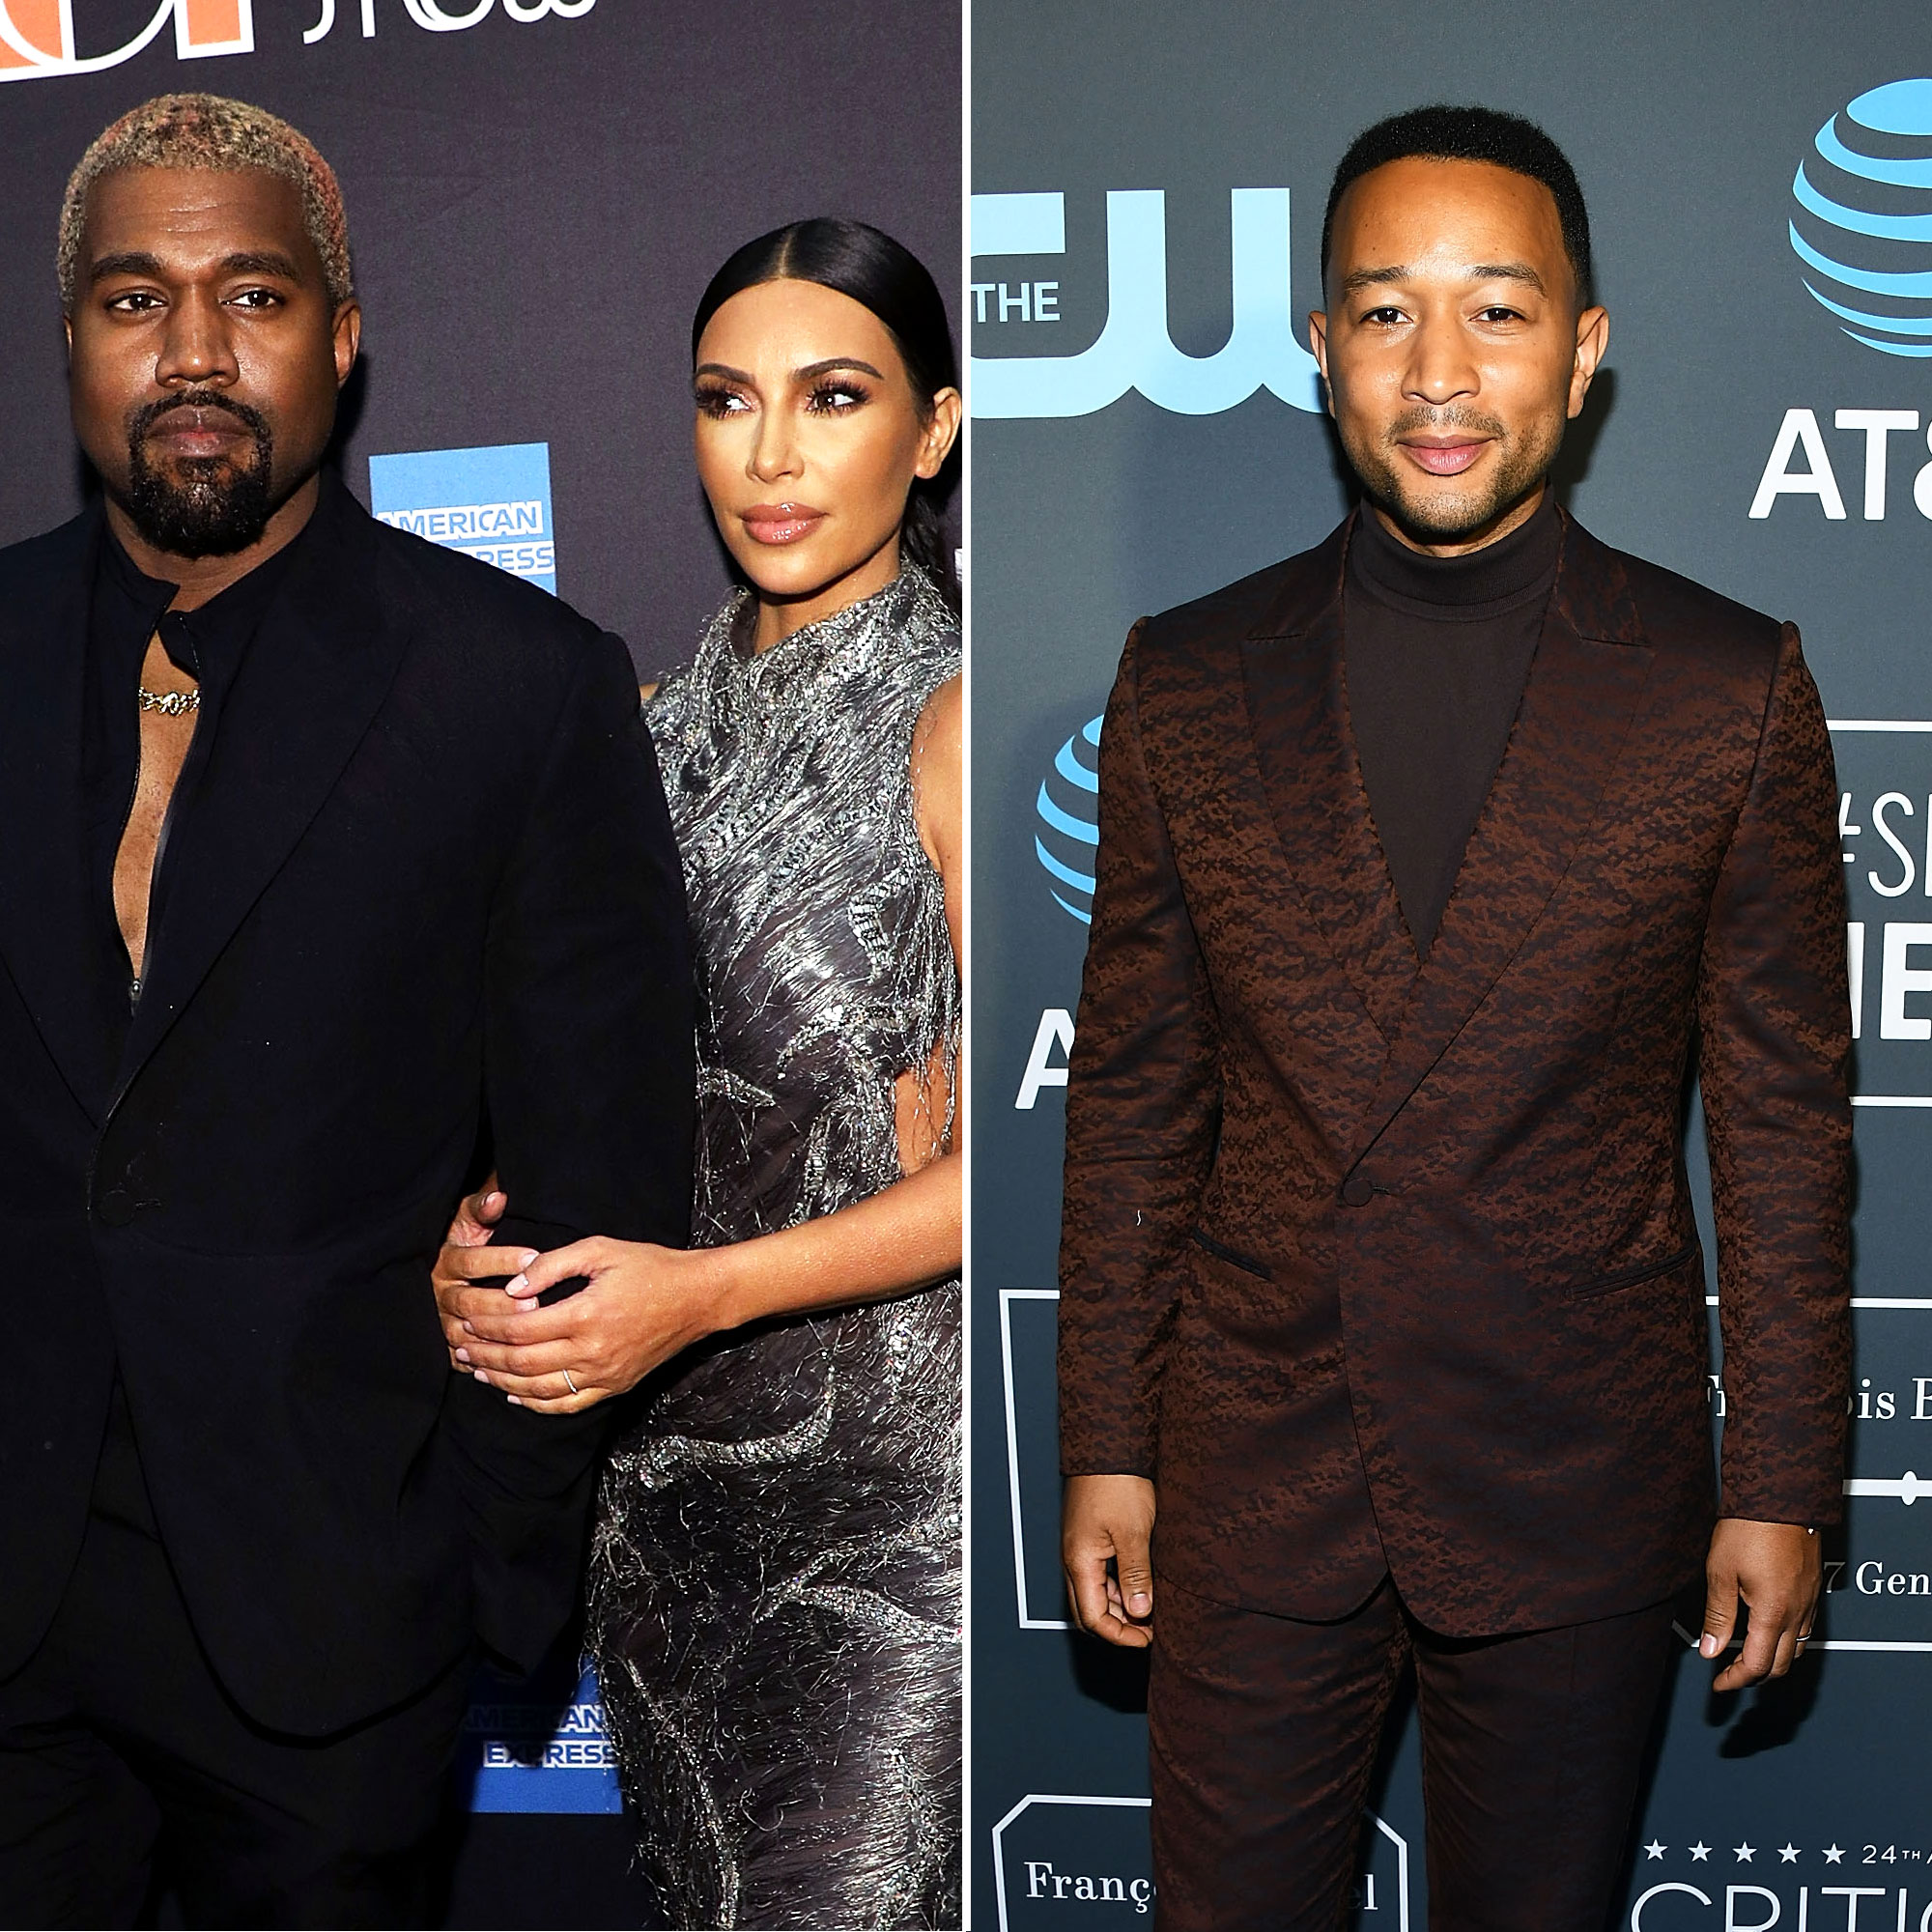 Kim Kardashian and Kanye West Pre-Gamed John Legend's 40th Birthday With Doughnuts - Kanye West, Kim Kardashian and John Legend